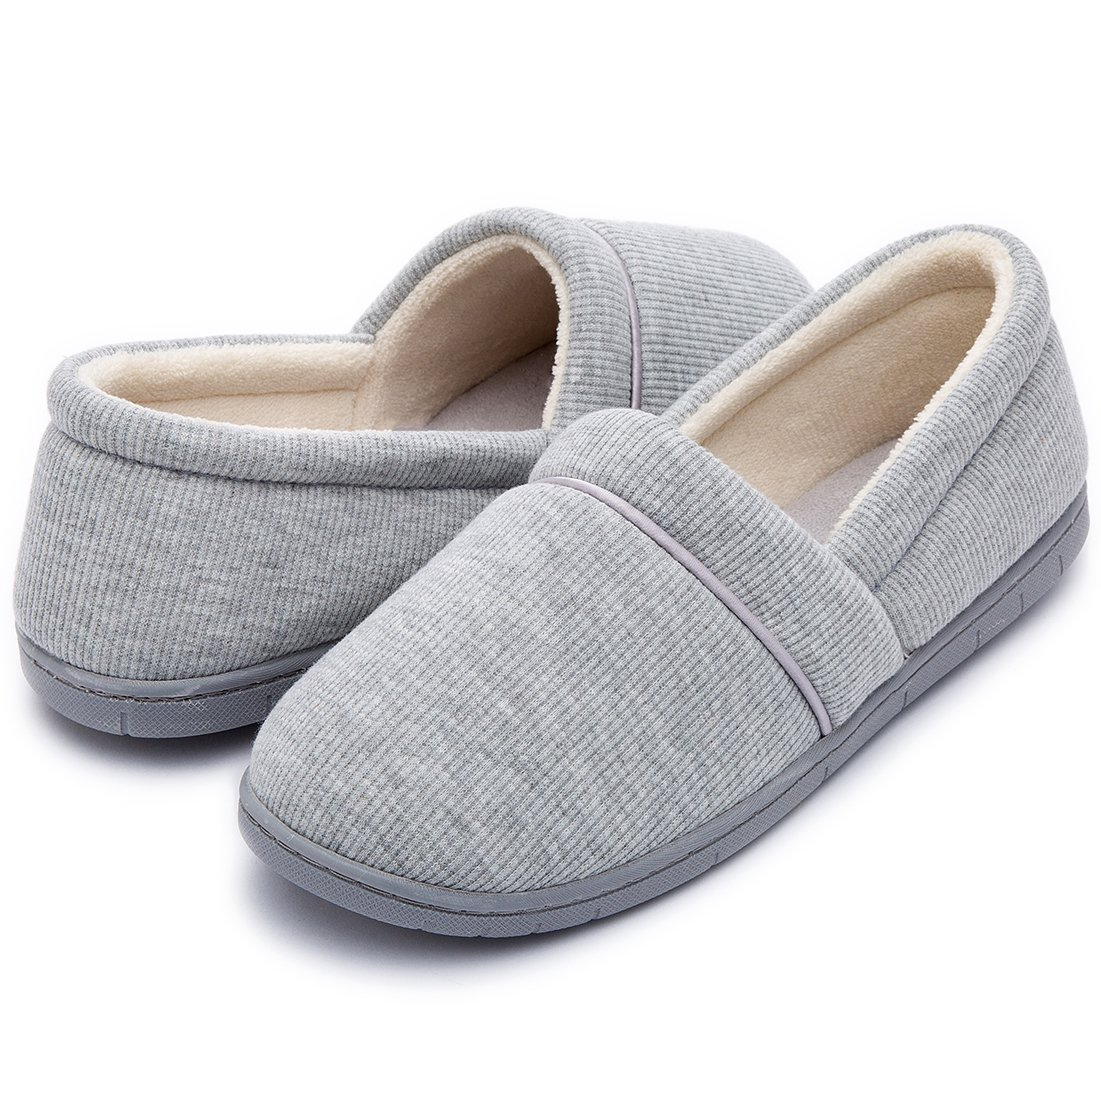 ULTRAIDEAS Women's Velvet Memory Foam Closed Back Slippers Lightweight Anti-Slid Embroidery Ballerina House/Office Shoes (Medium / 7-8 B(M) US, Gray) by ULTRAIDEAS